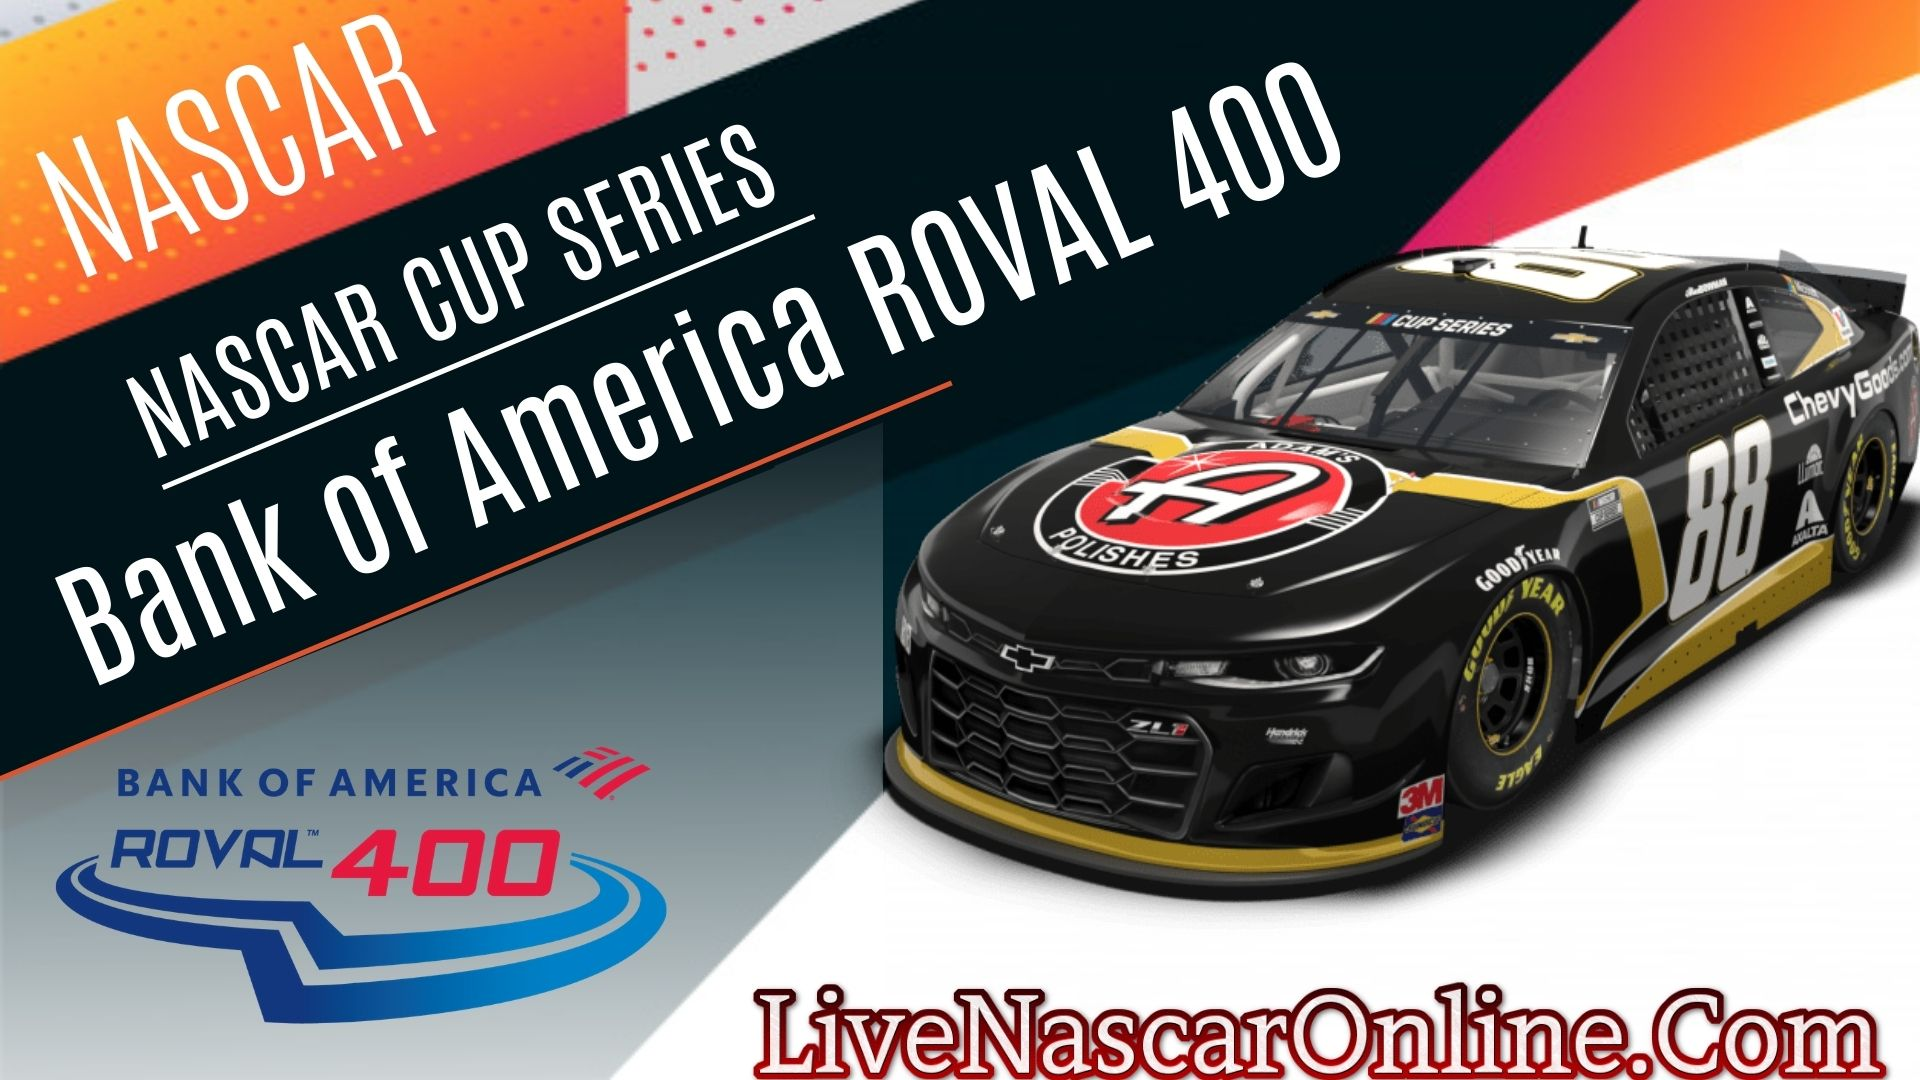 Bank of America ROVAL 400 Highlights 2020 Nascar Cup Series